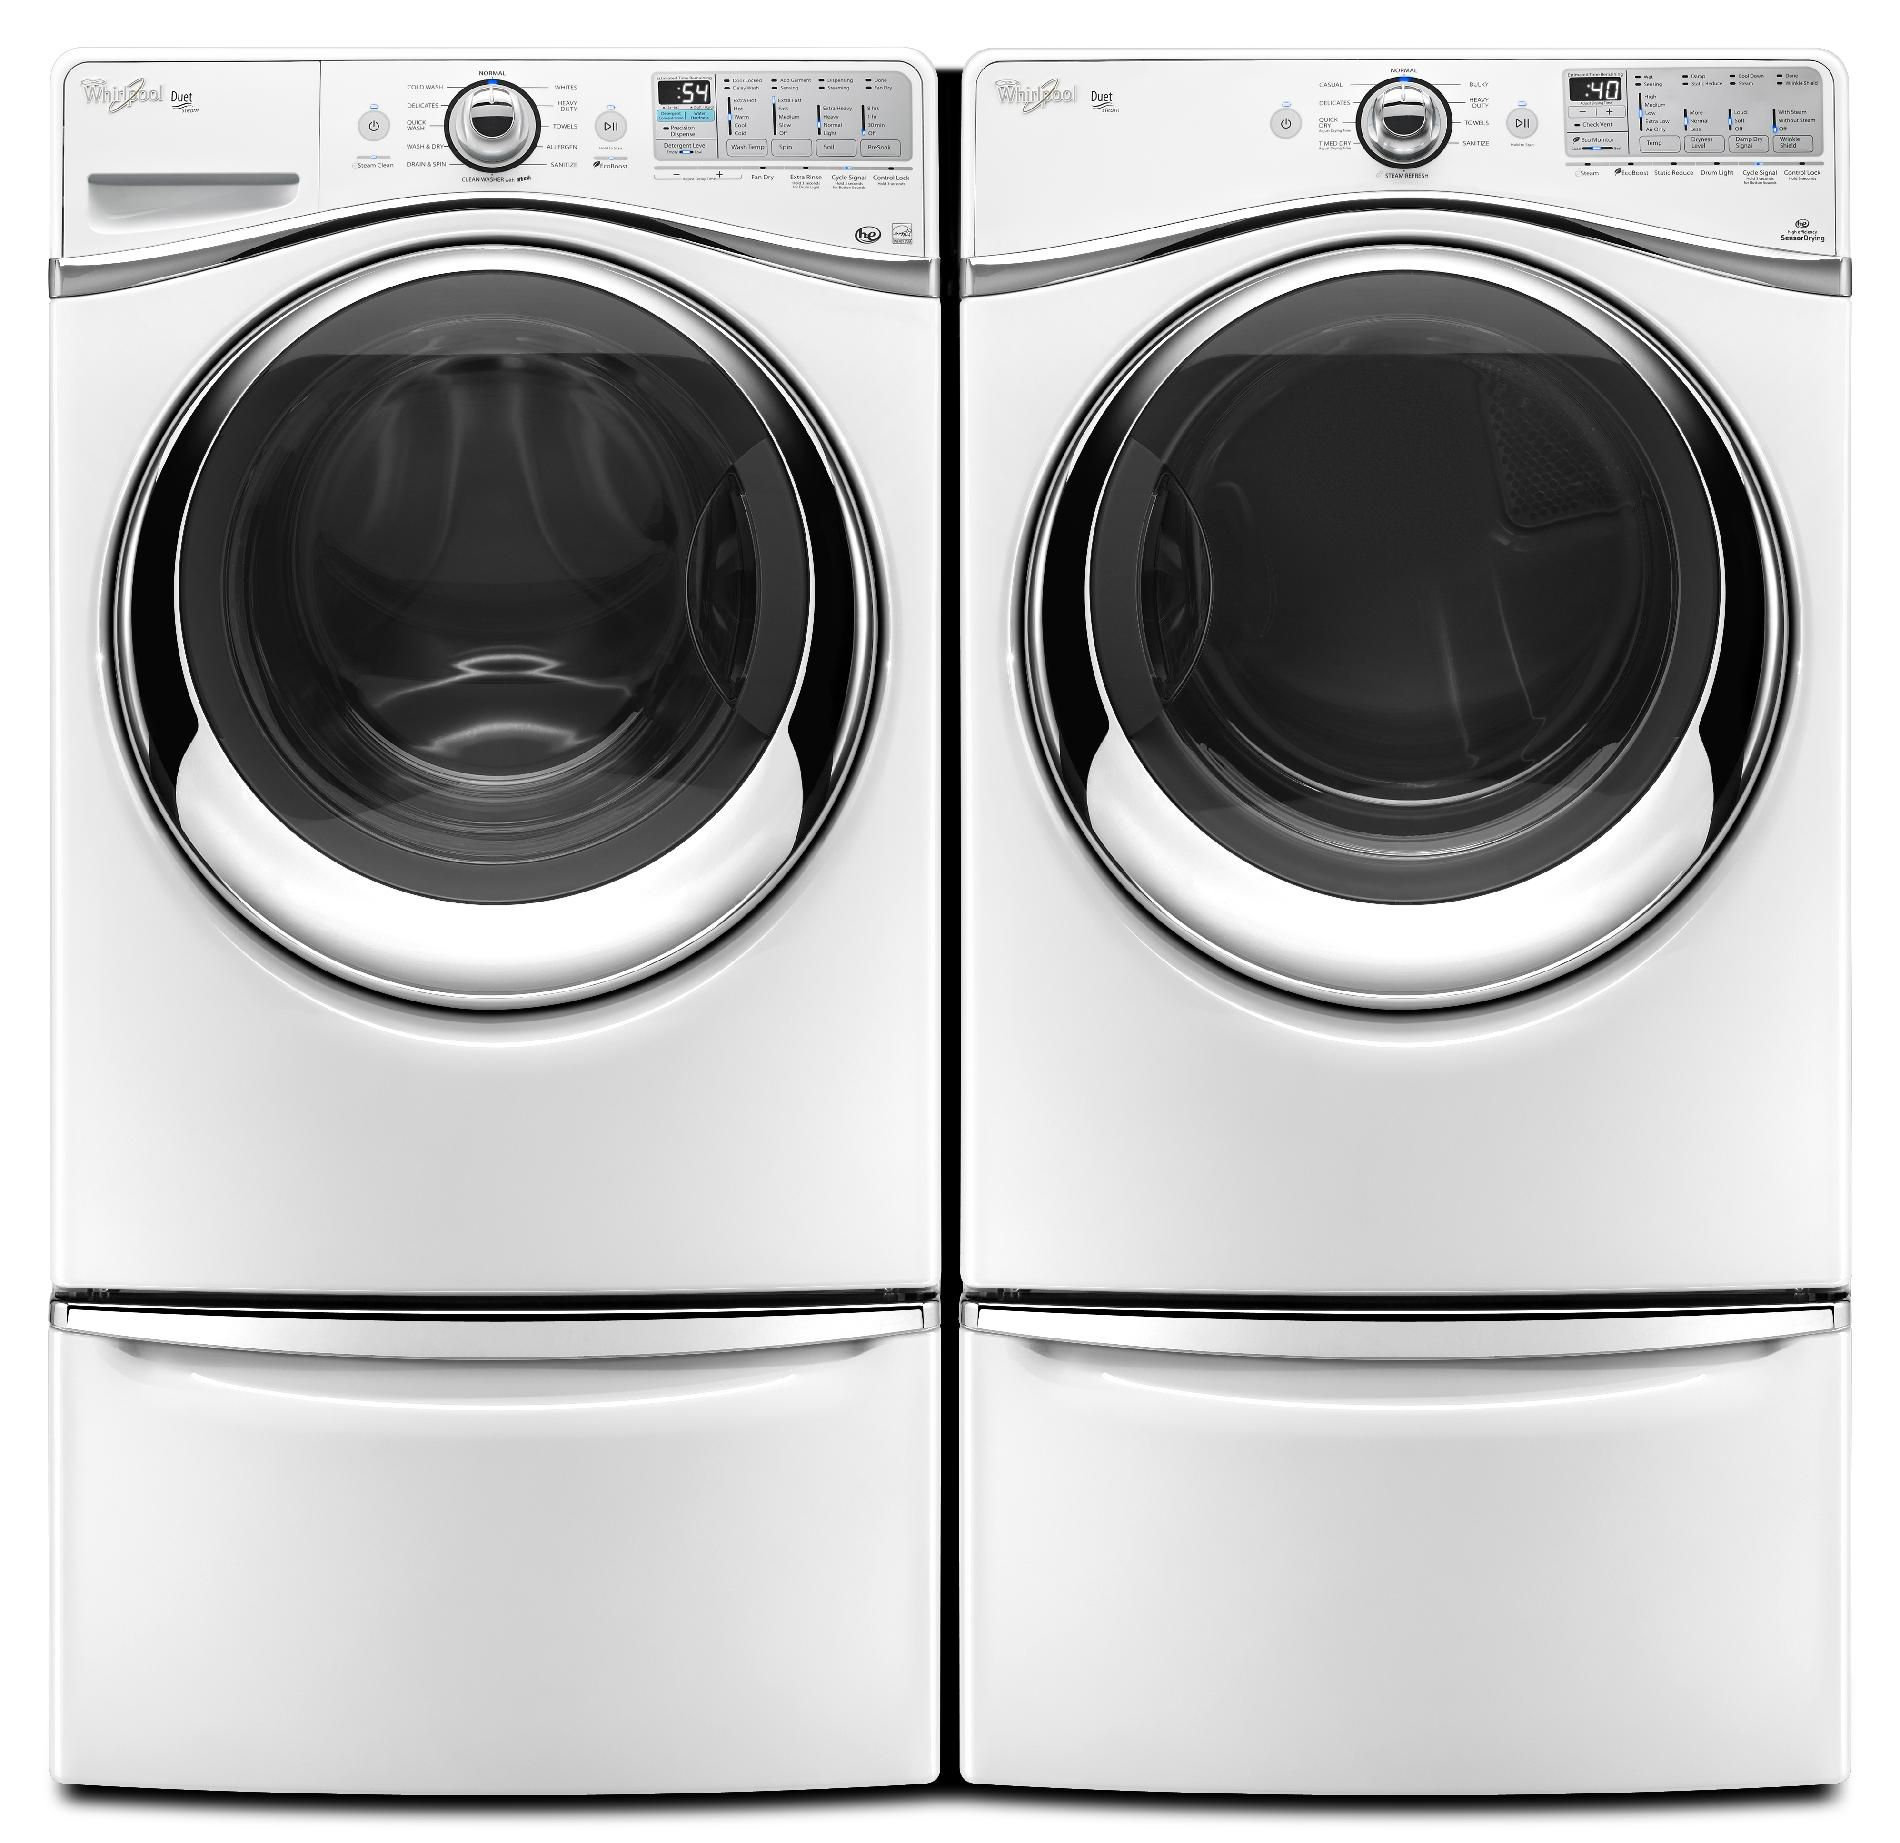 Whirlpool 4.3 cu. ft. Front-Load Washer w/ Precision Dispense Ultra - White